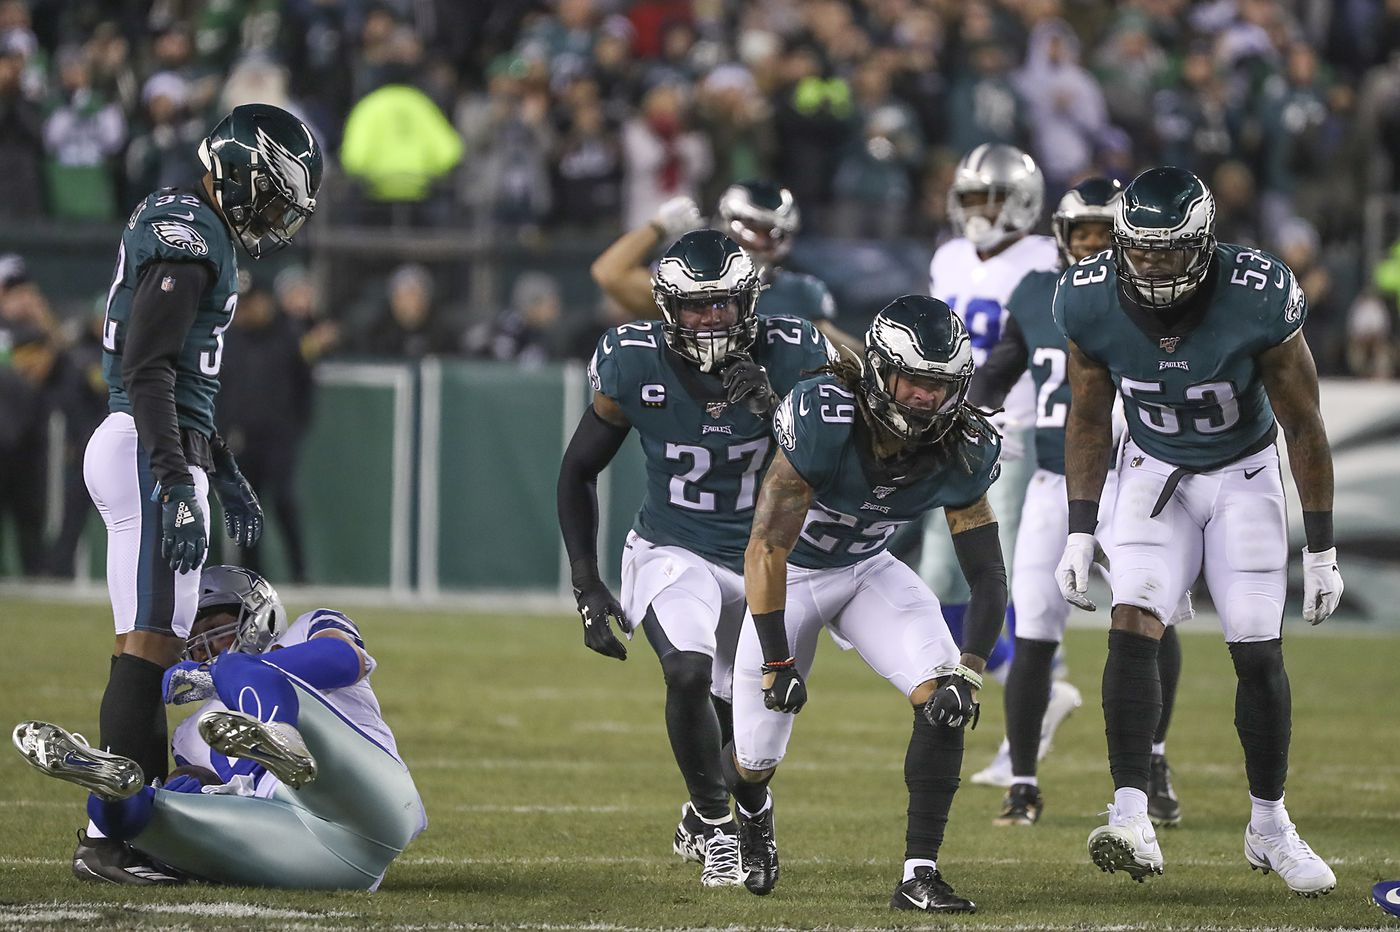 Philadelphia Eagles 17, Dallas Cowboys 9: Eagles take first place in NFC East — as it happened